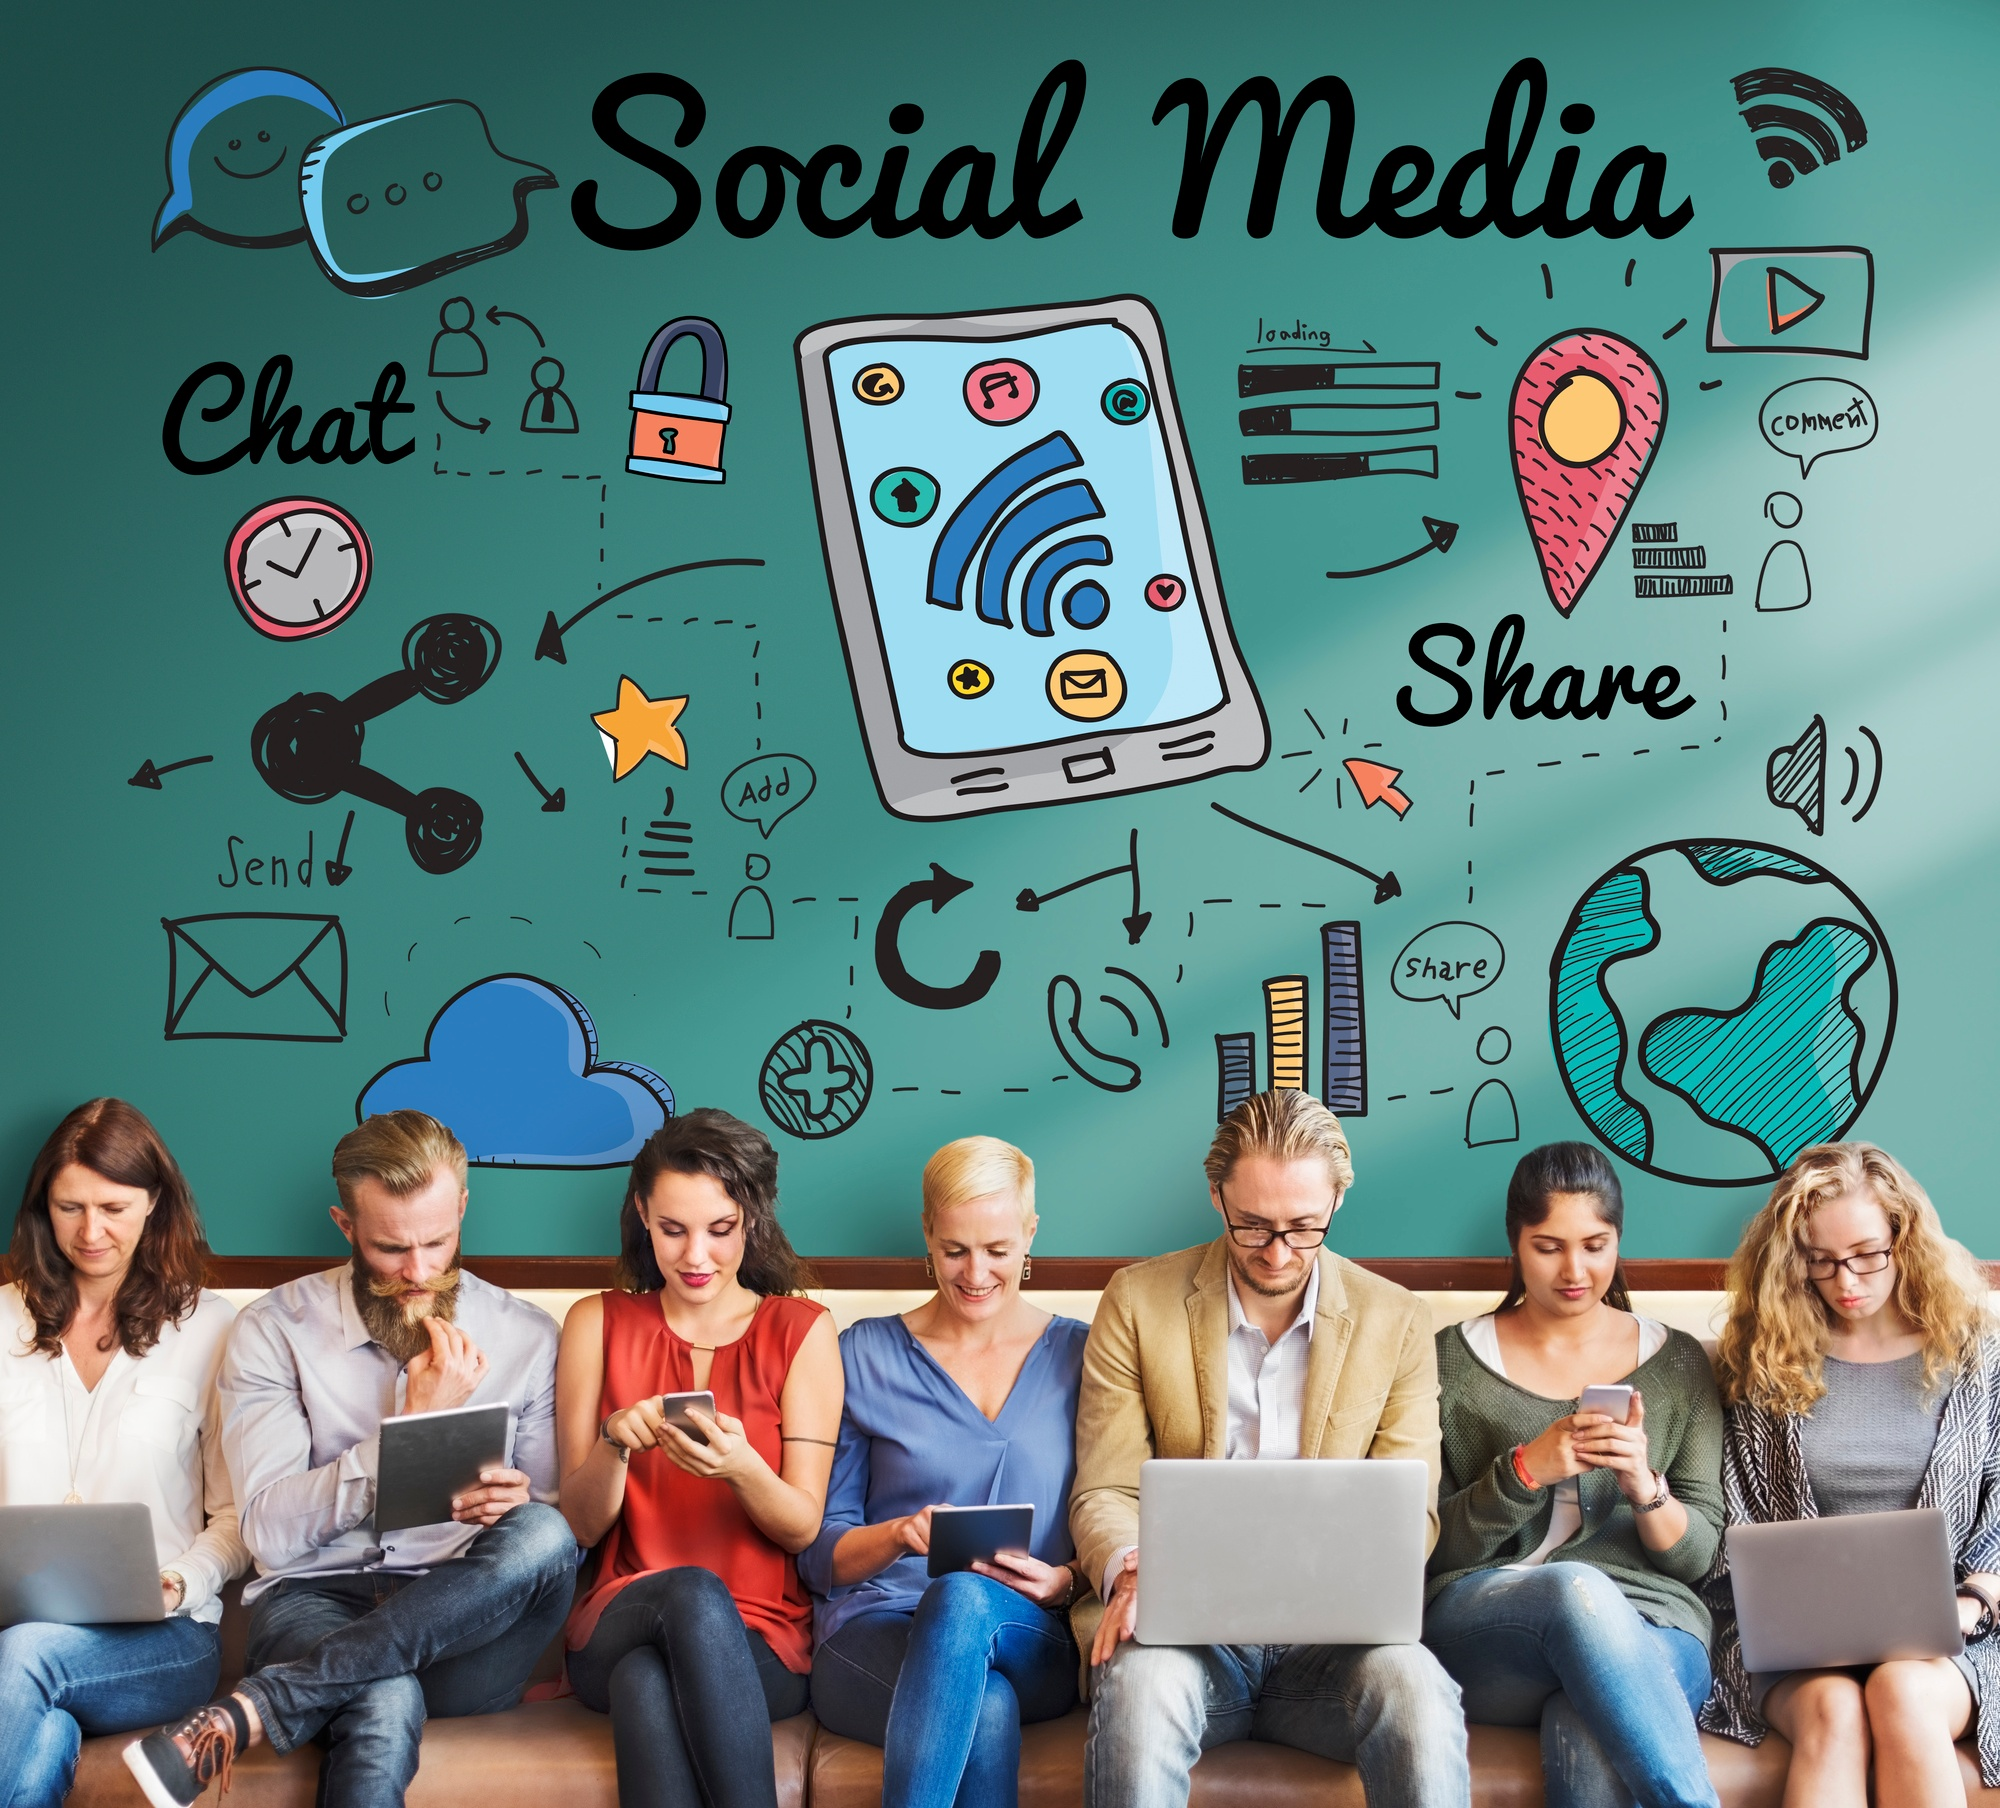 Social Media Marketing Tips from 20 Small Businesses (Part 1)